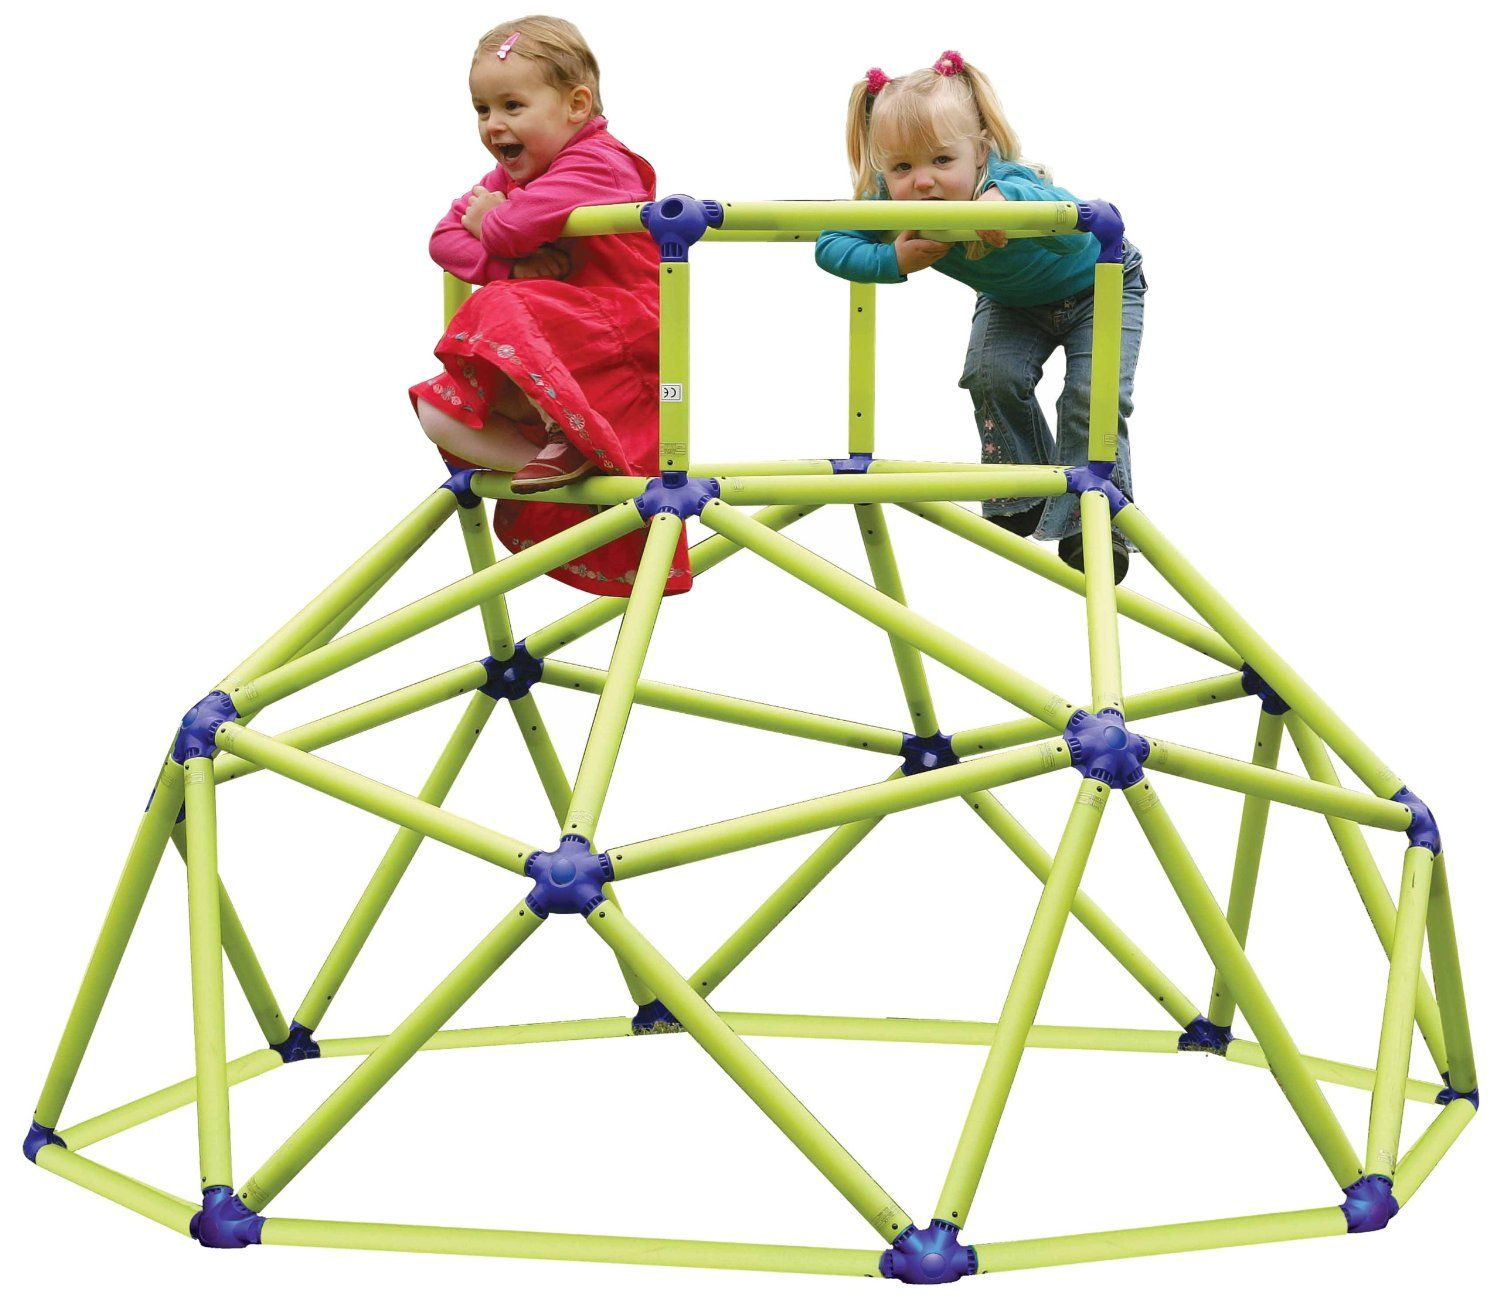 Outdoor Climbing Outdoor Ideas For Infants Toddlers Pinterest